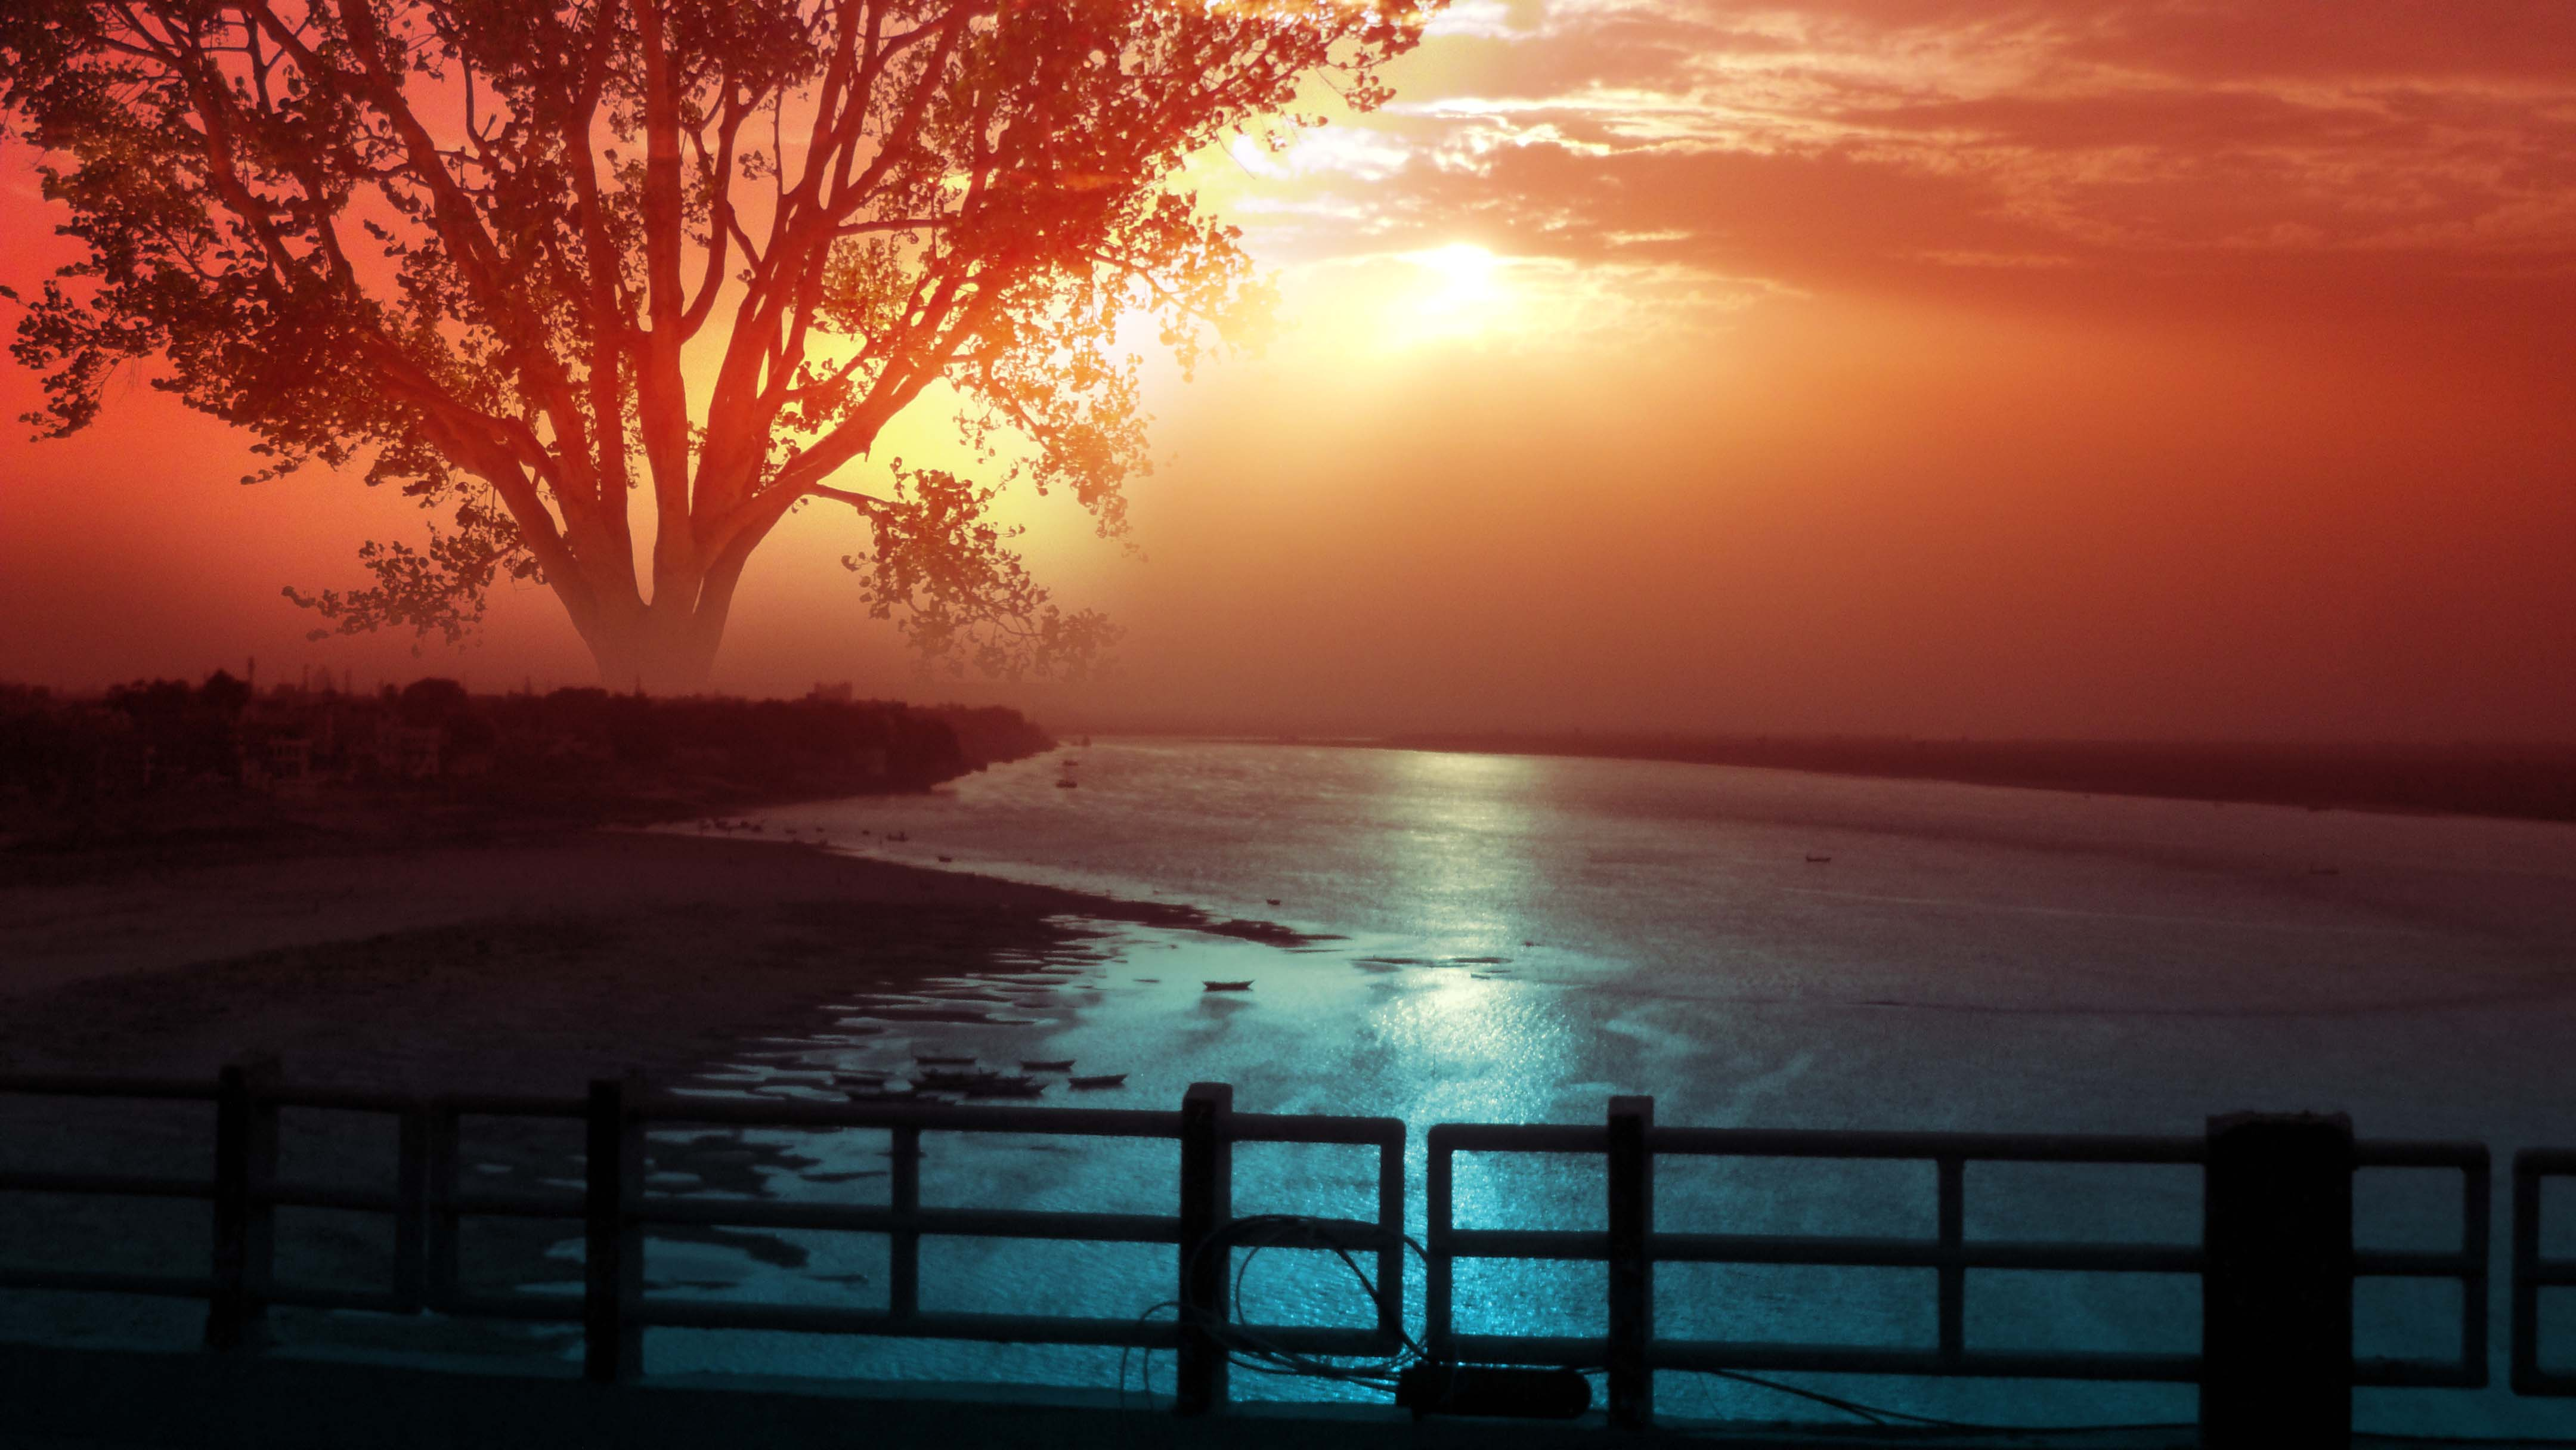 Download Best Sunset HD Wallpaper 21 Wallpapers & Images ...